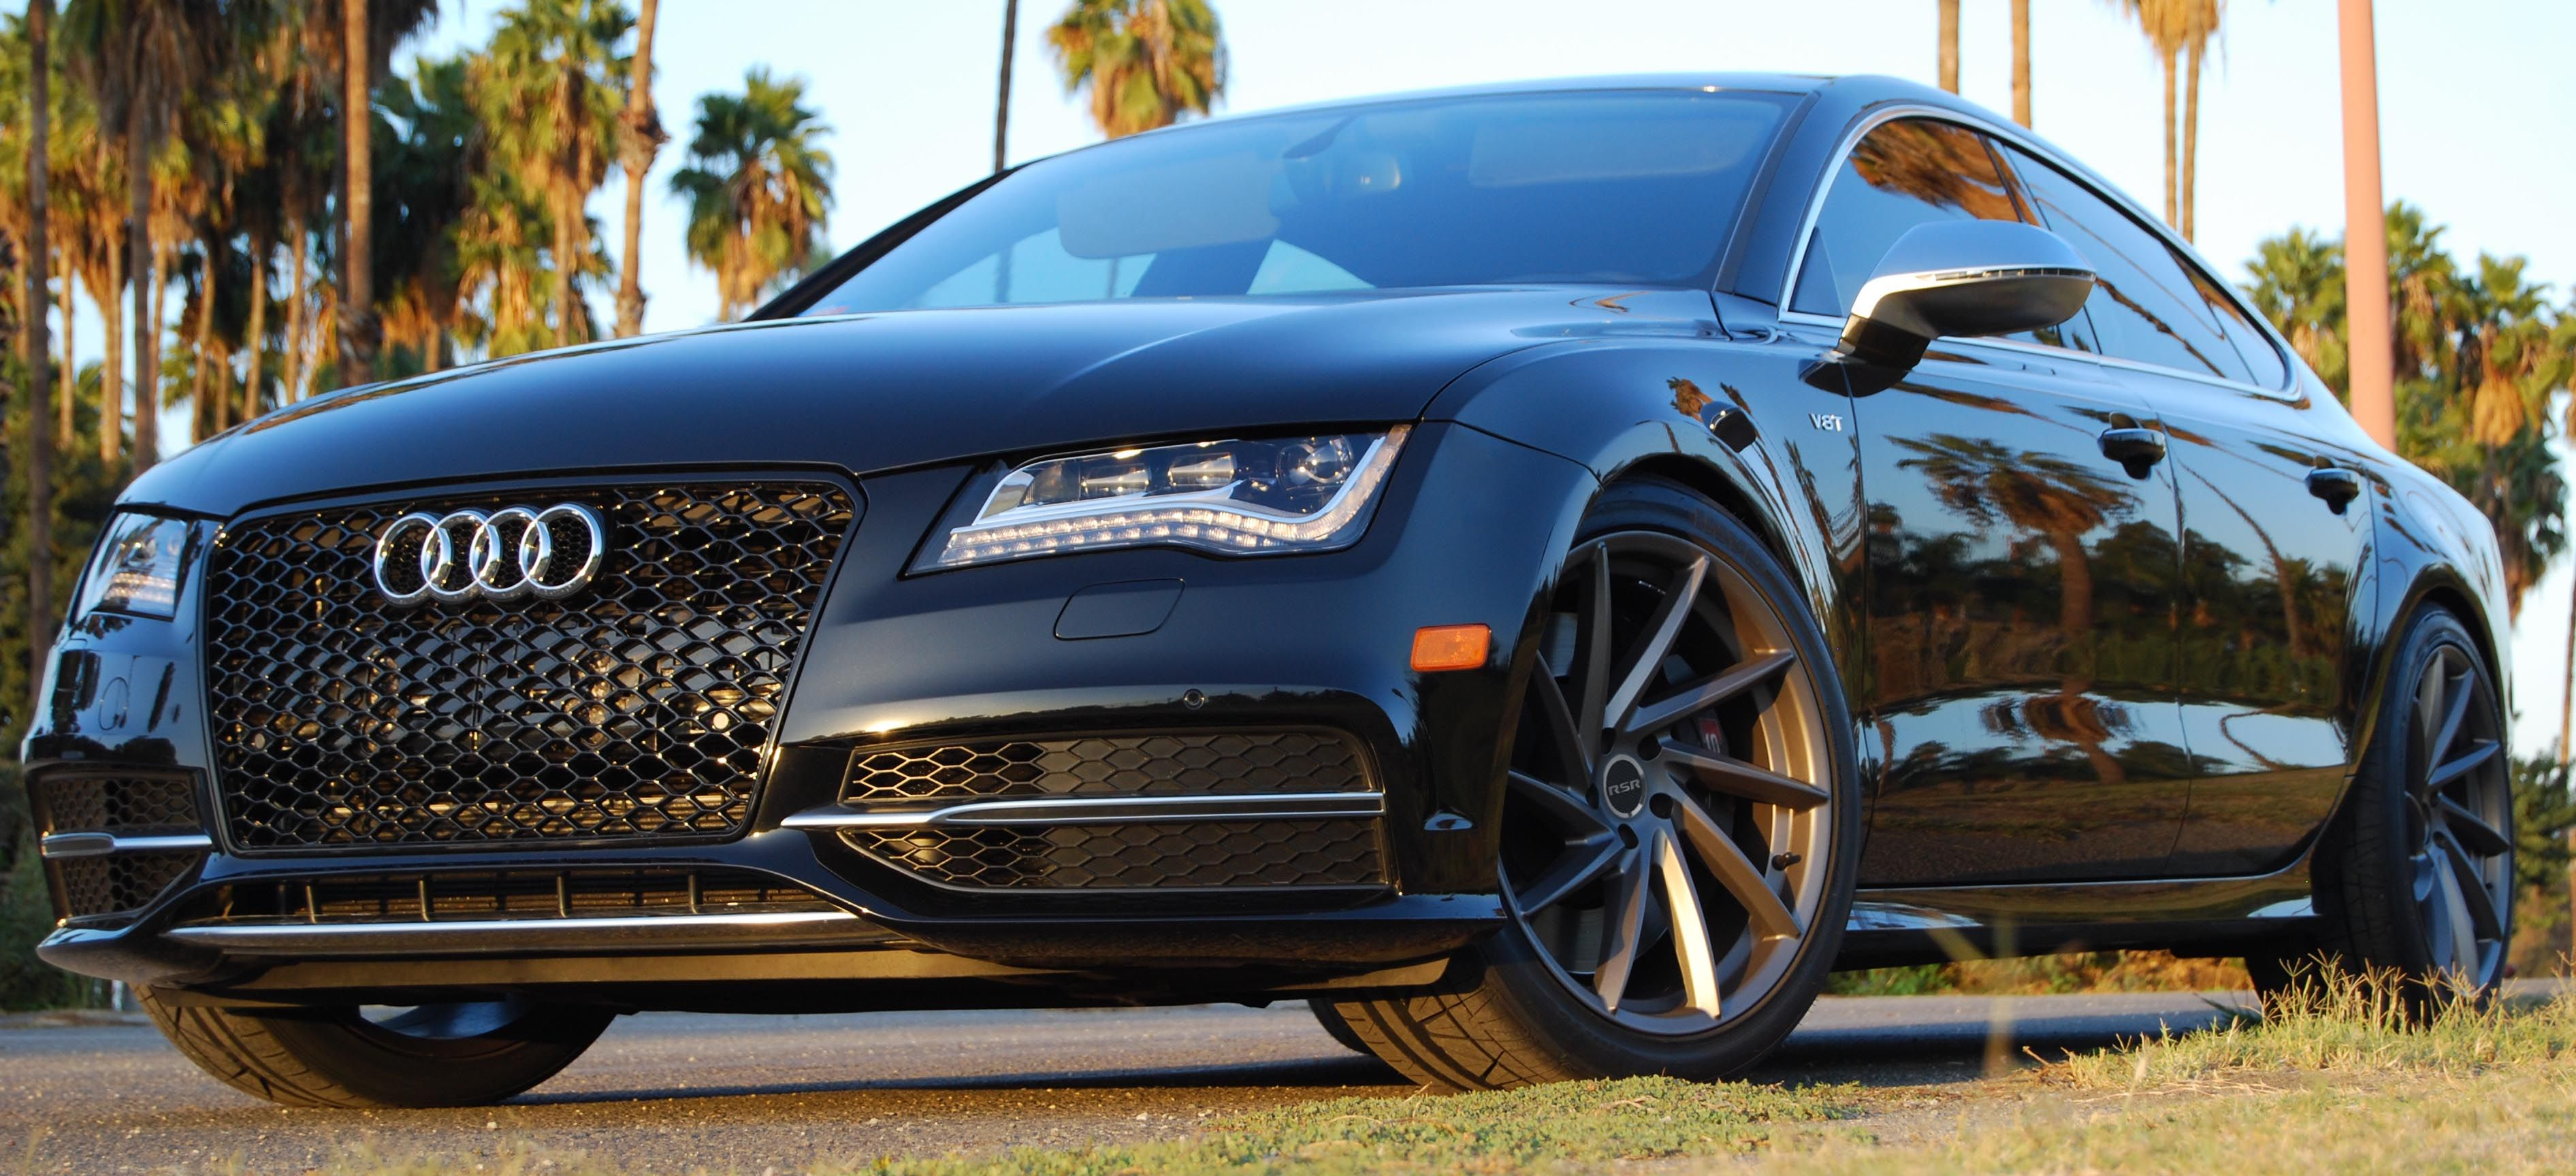 Genial Audi S7 With RSR R701 Tugsten Grey Wheels